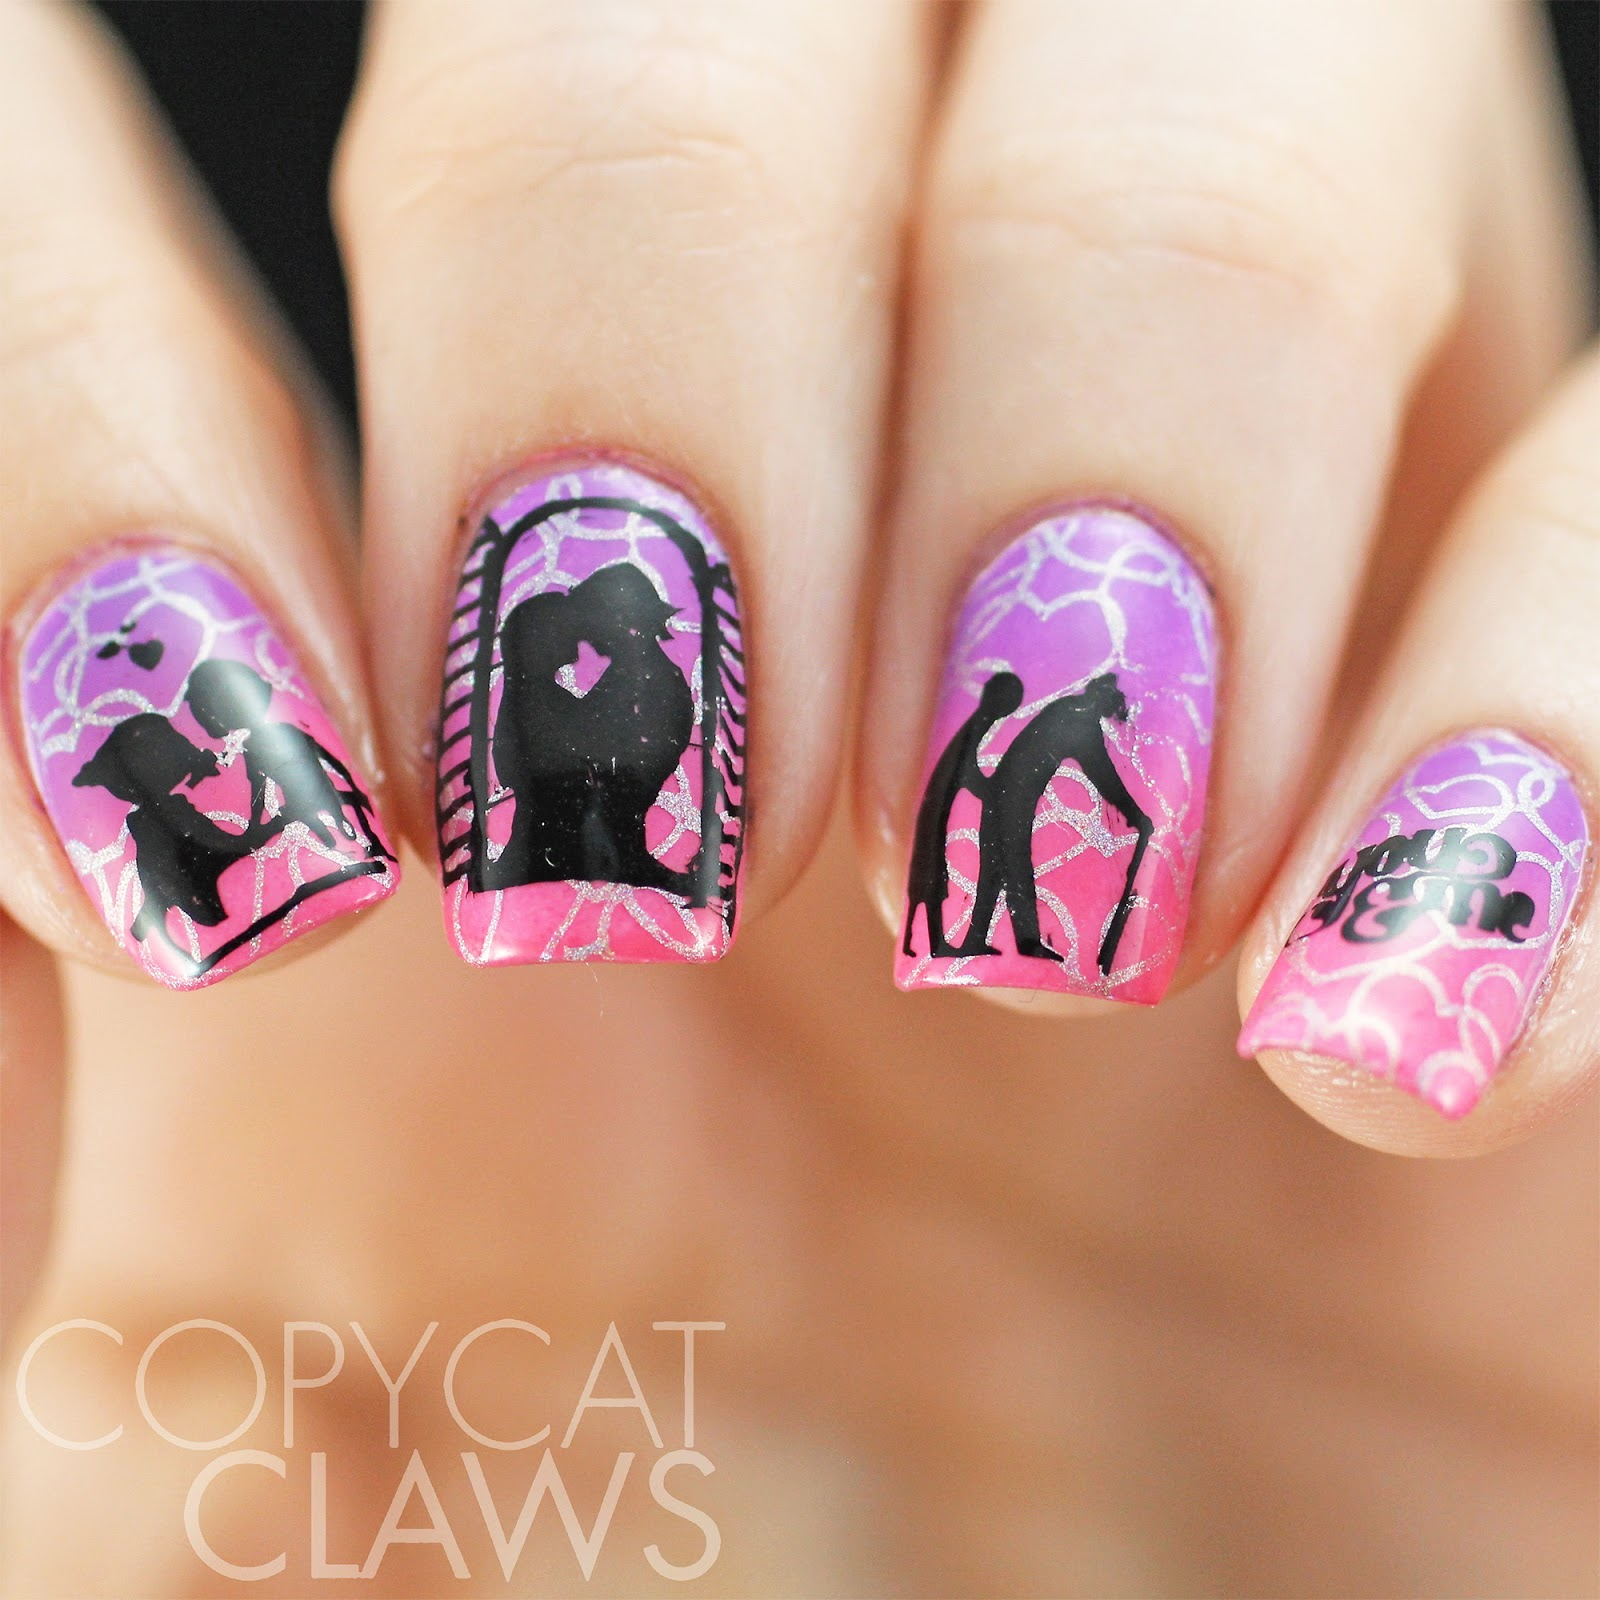 Copycat Claws: 40 Great Nail Art Ideas - Love